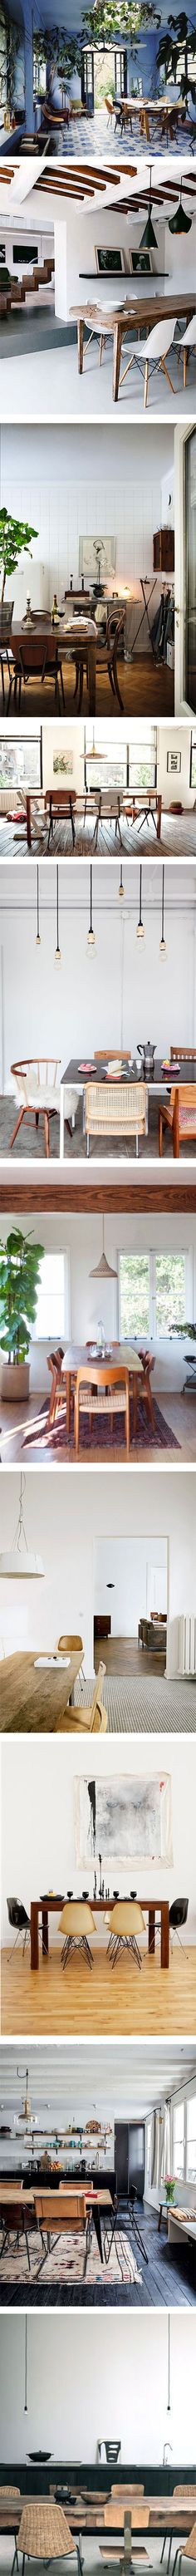 10 home spaces we'd love to dine in on Nuji.com #homedecor #dining #interiors